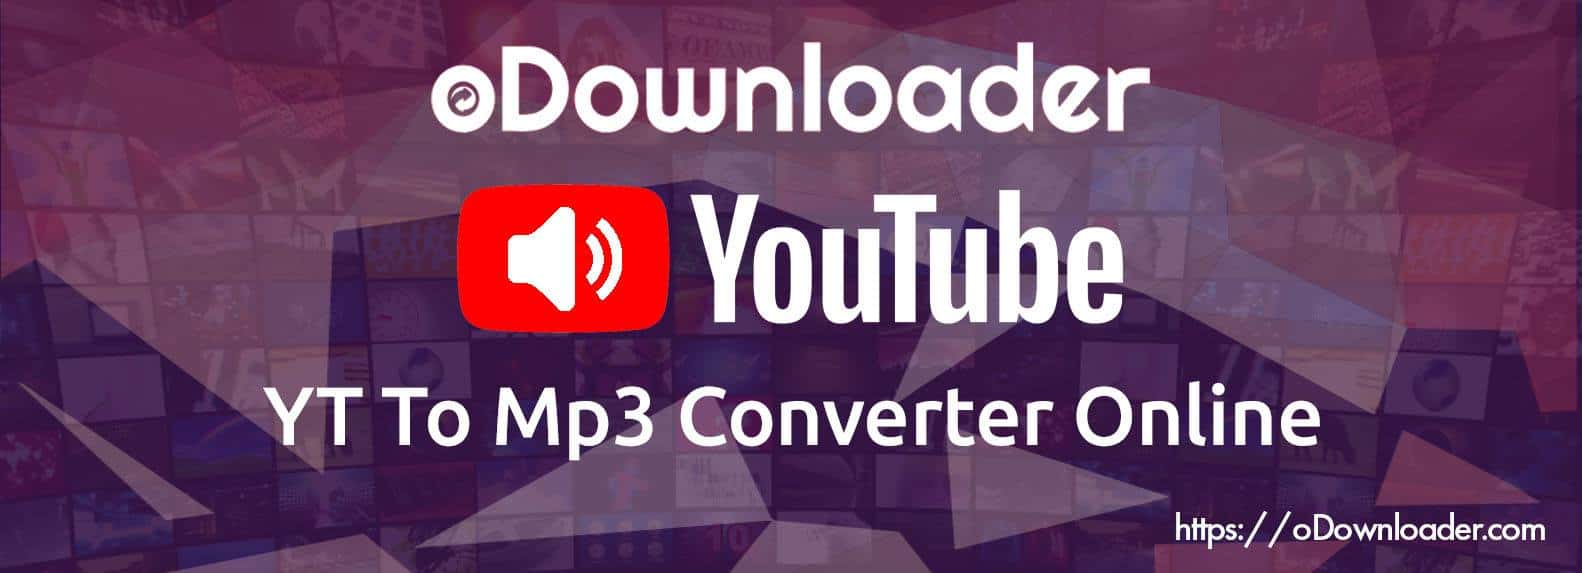 free online youtube to mp3 converter 320 kbps